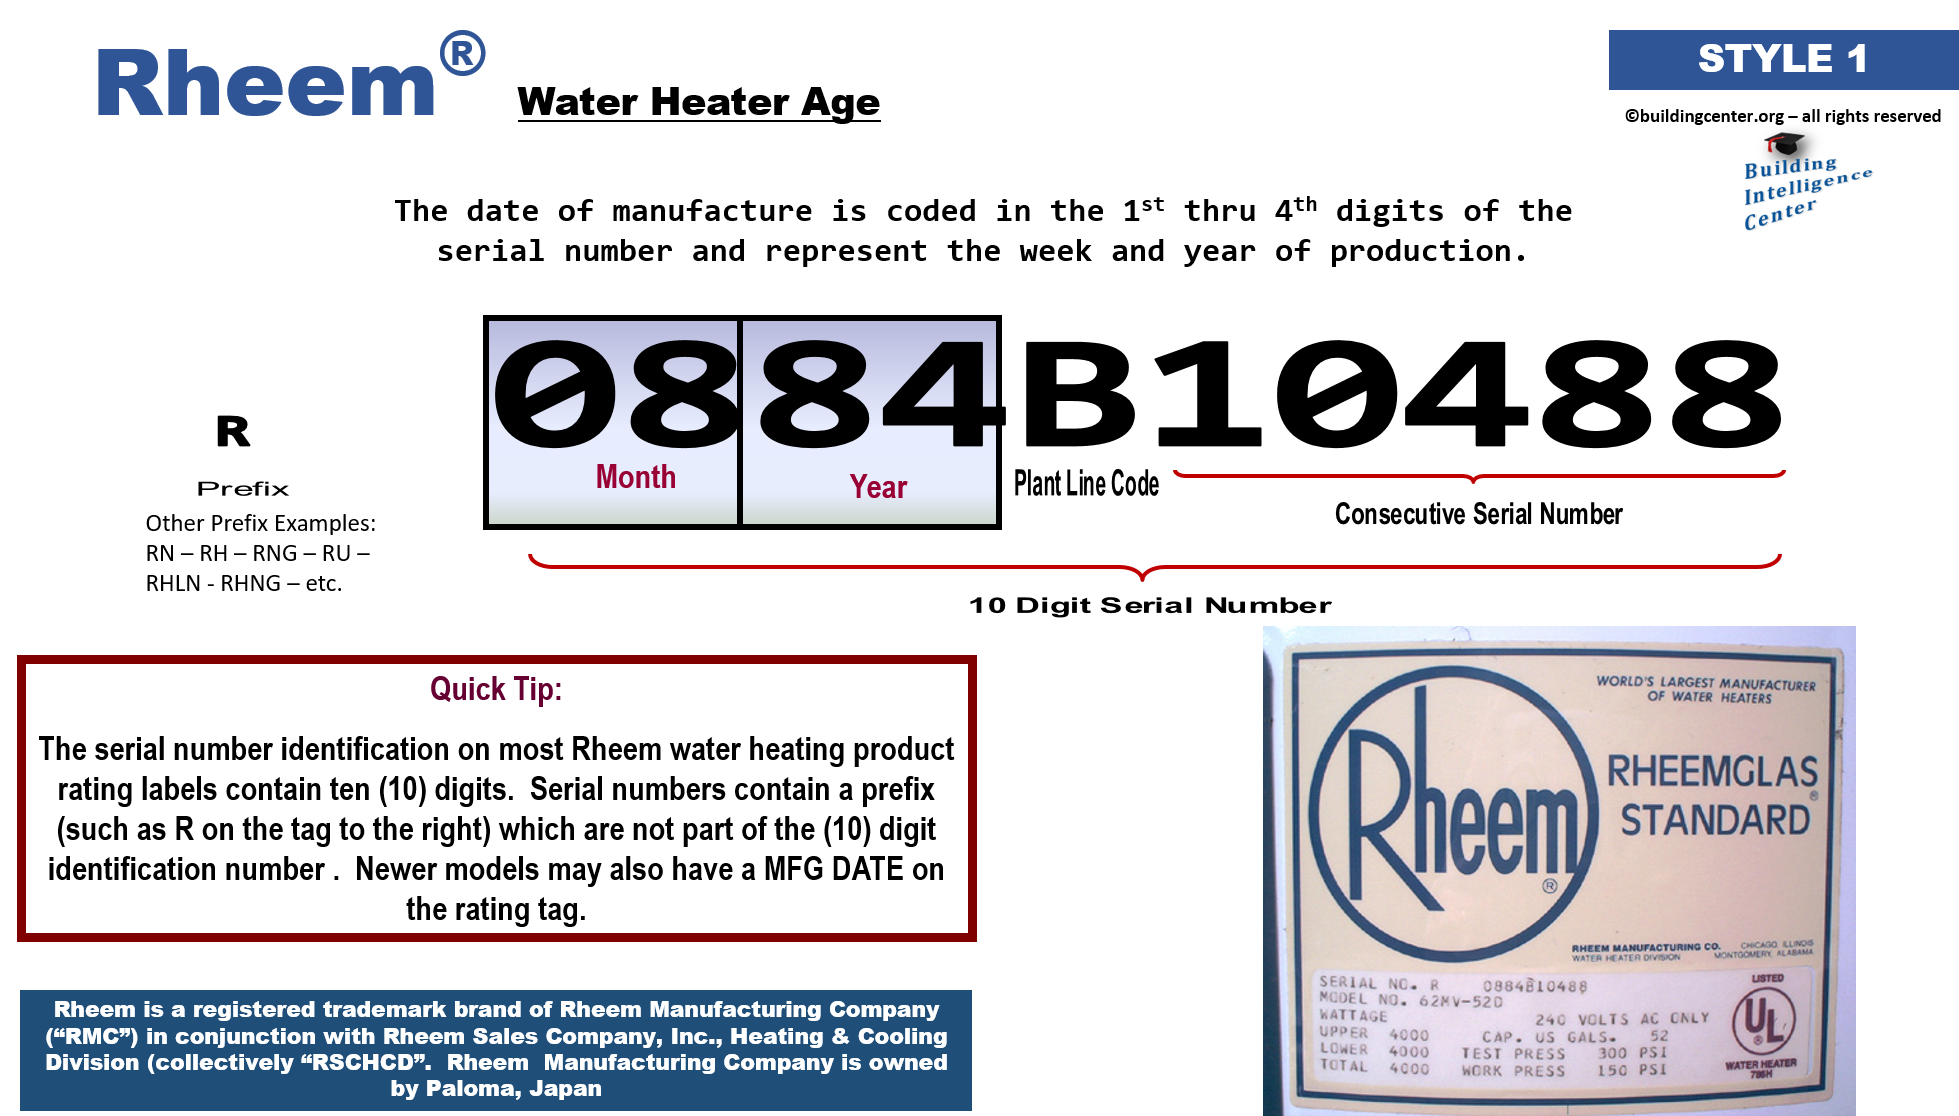 rheems dating Date of patent: september 11, 2018 assignee: rheem manufacturing  company inventors: raheel a chaudhry, arthur y hinton, jozef boros.